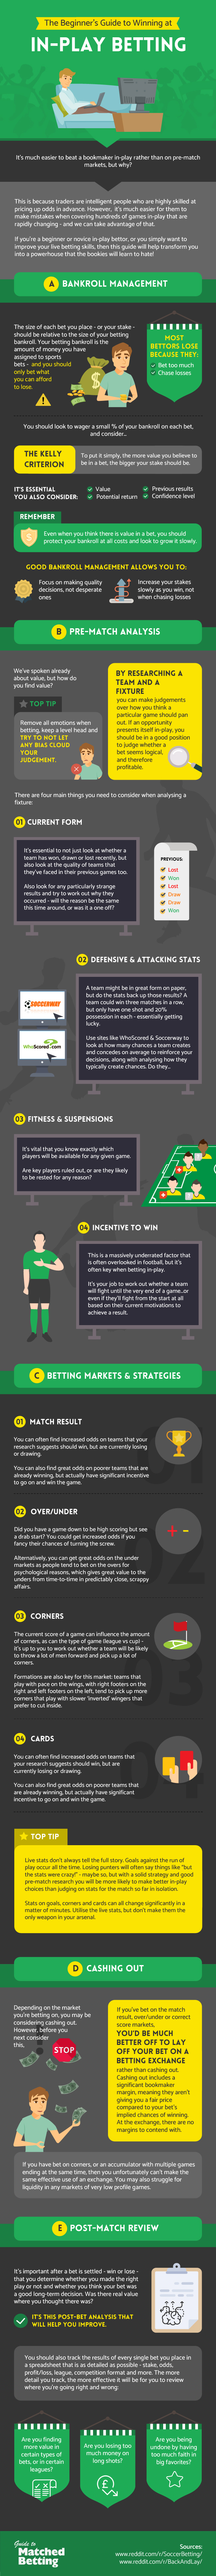 In Play Betting Tips